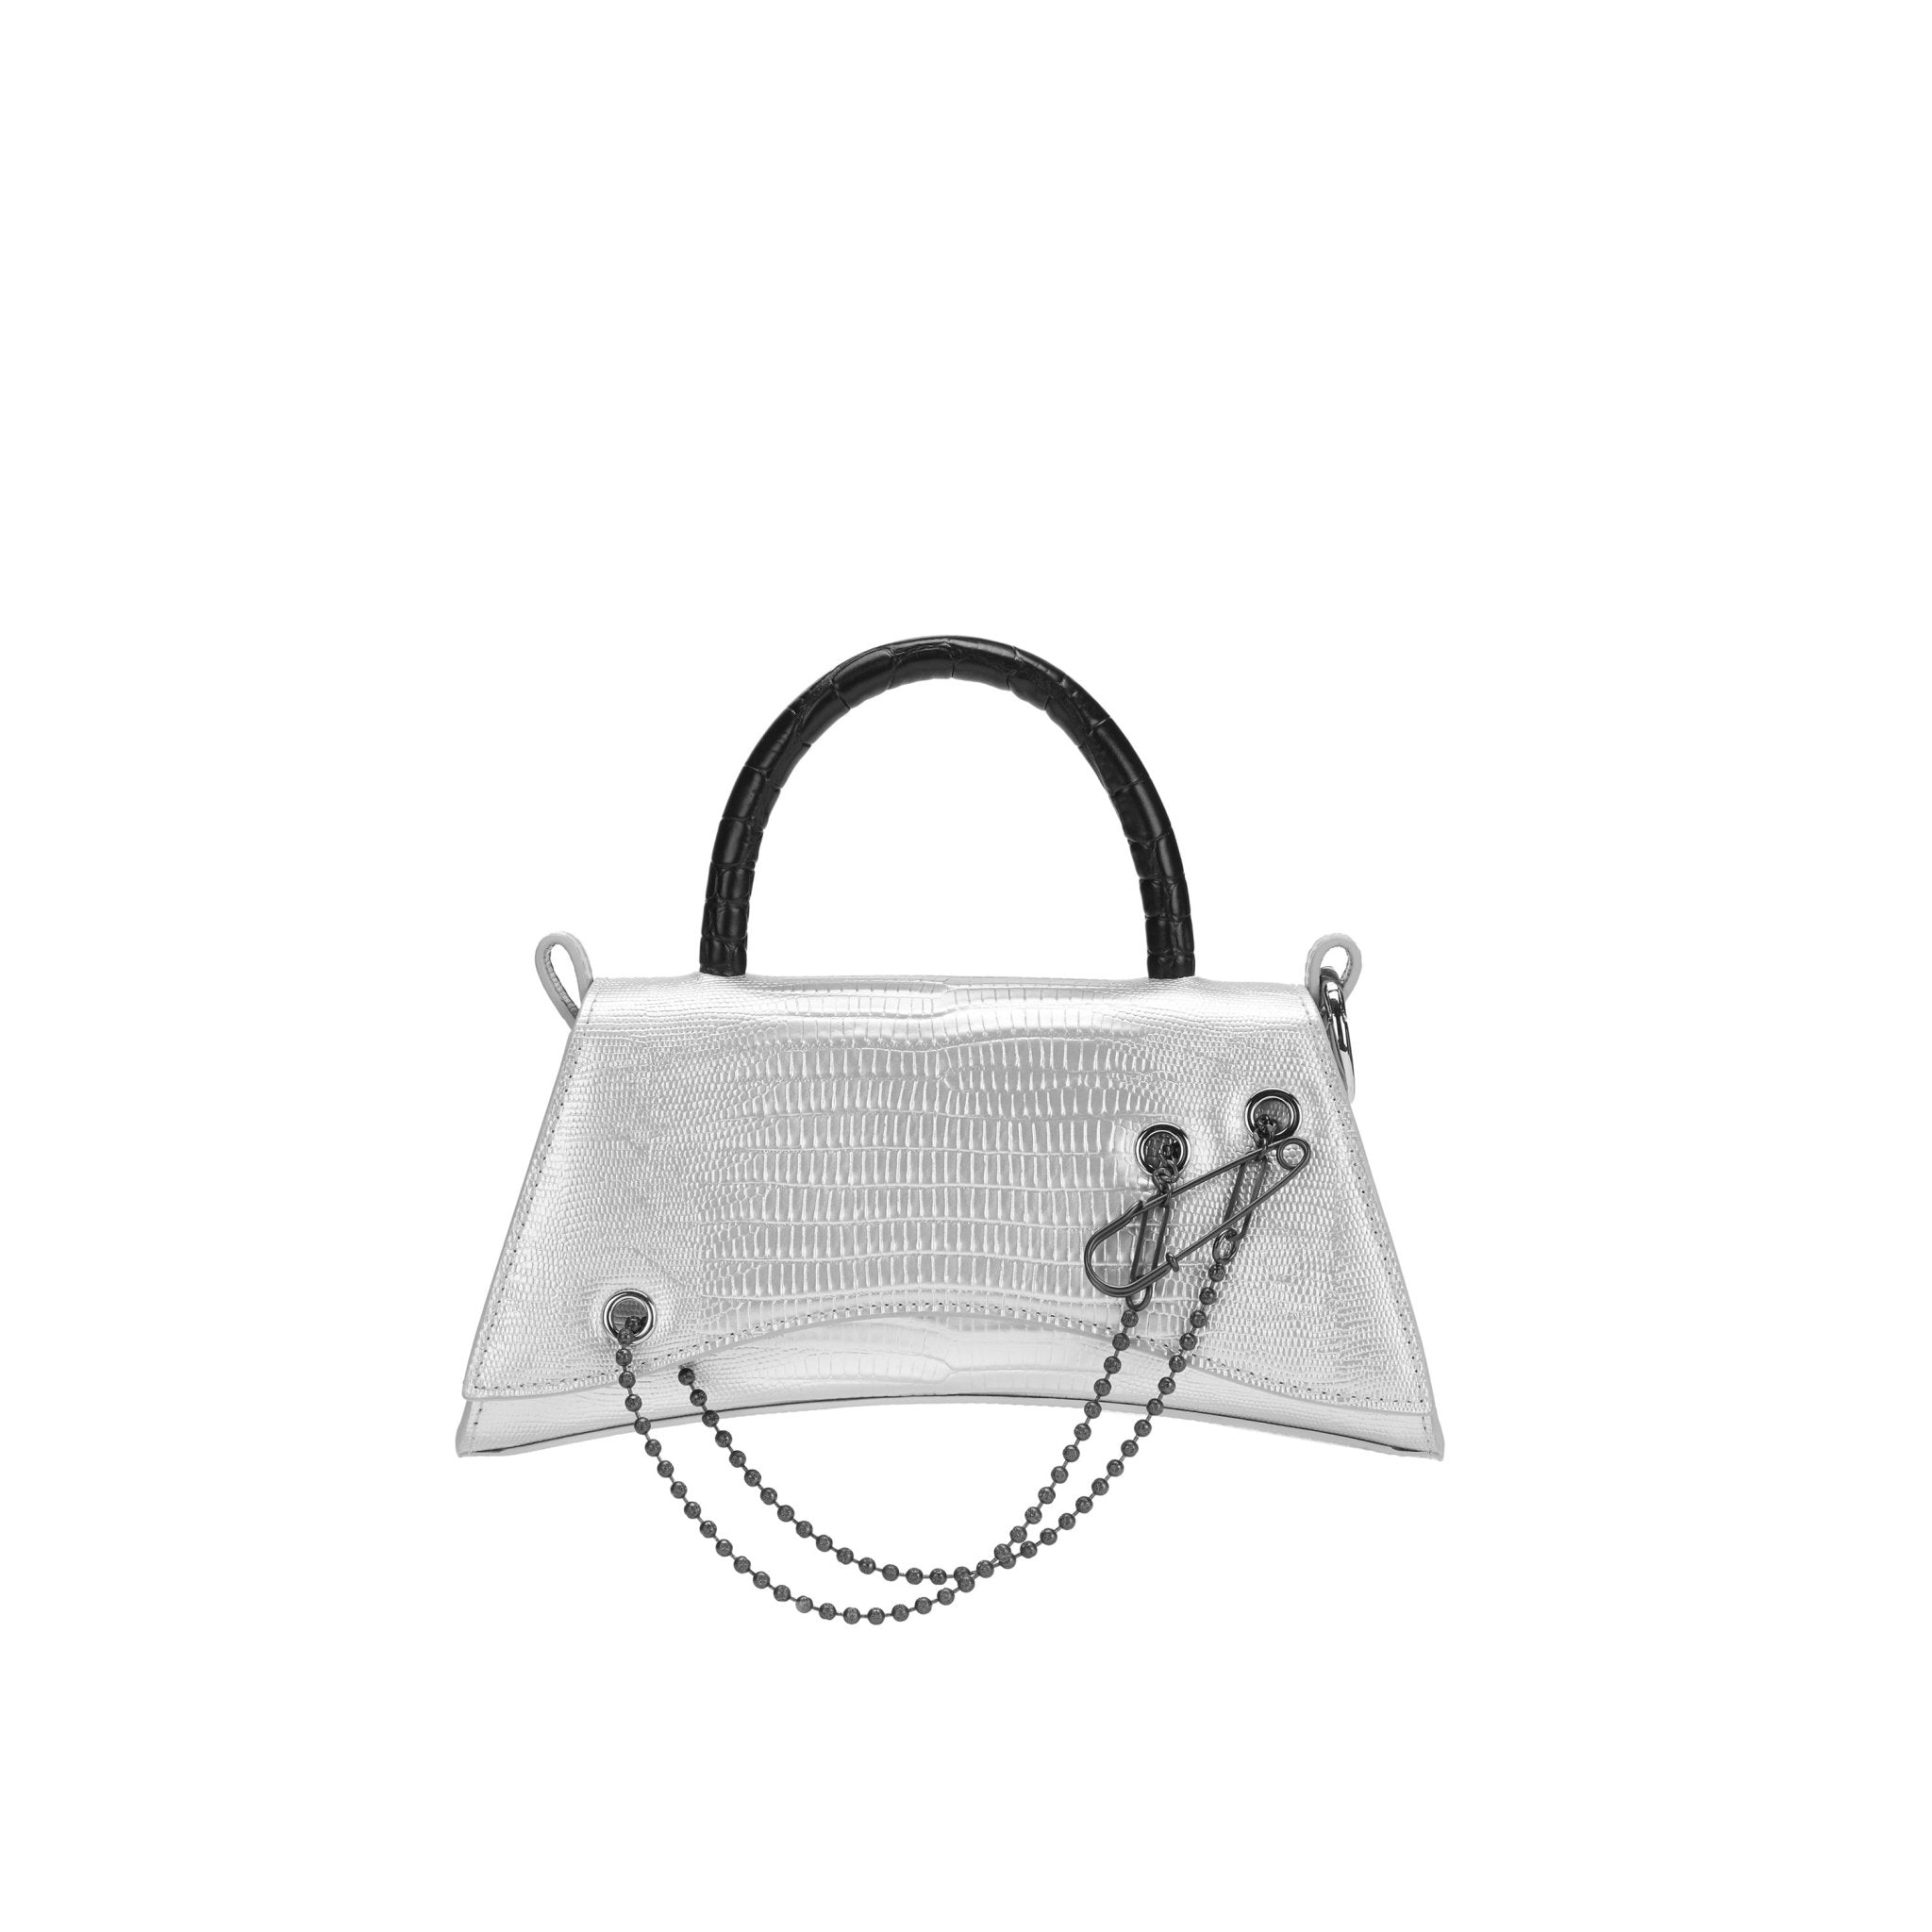 LOST IN ECHO Silver Barrett Metail Chain Bag Small | MADA IN CHINA